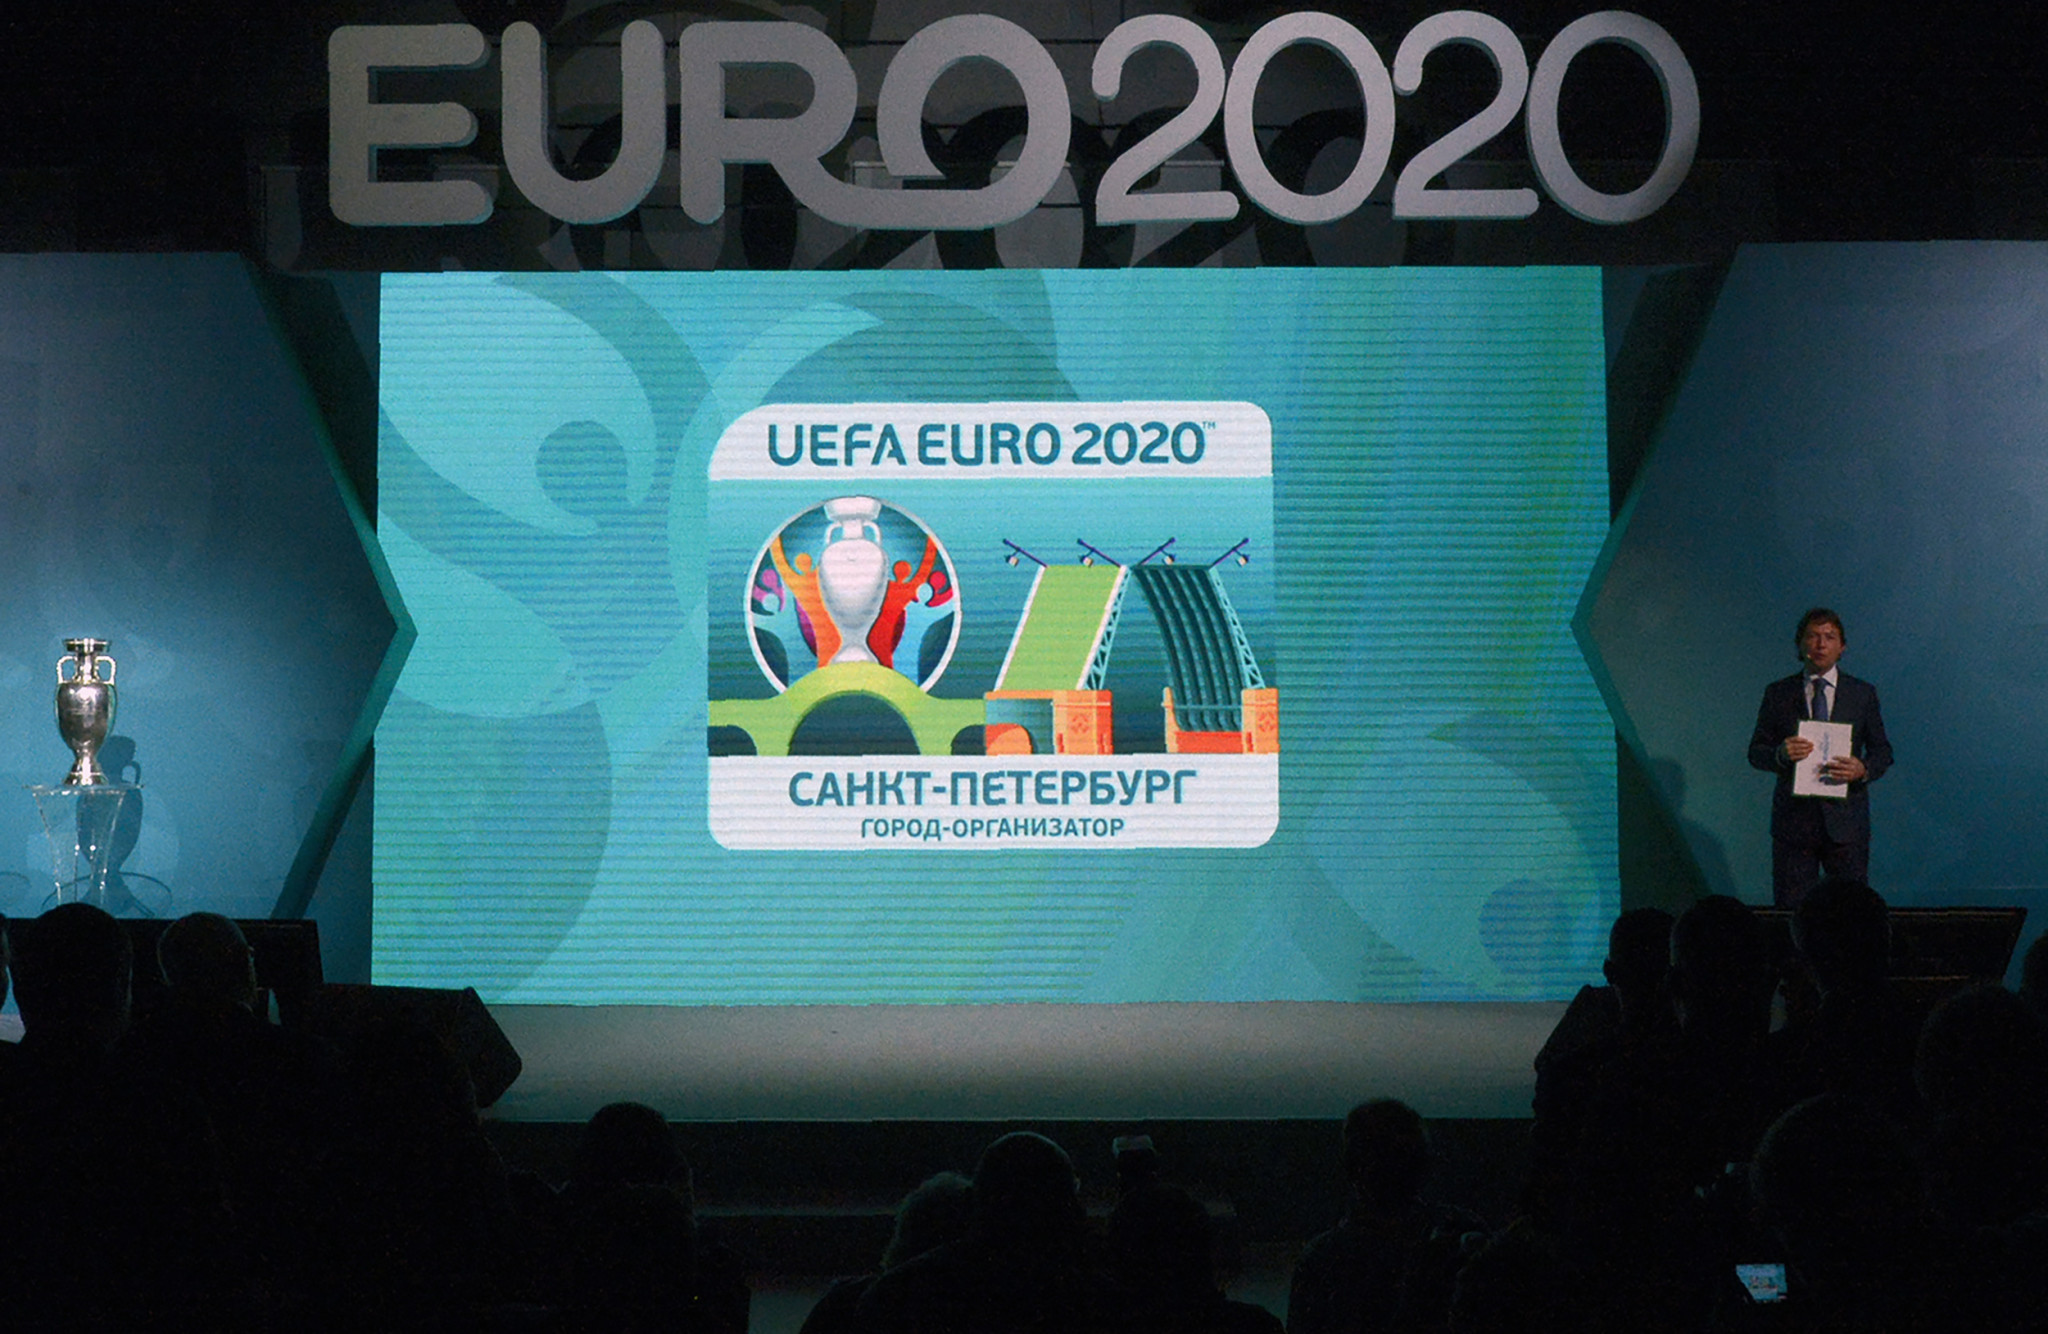 UEFA Euro 2020 will take place in cities across the continent ©Getty Images